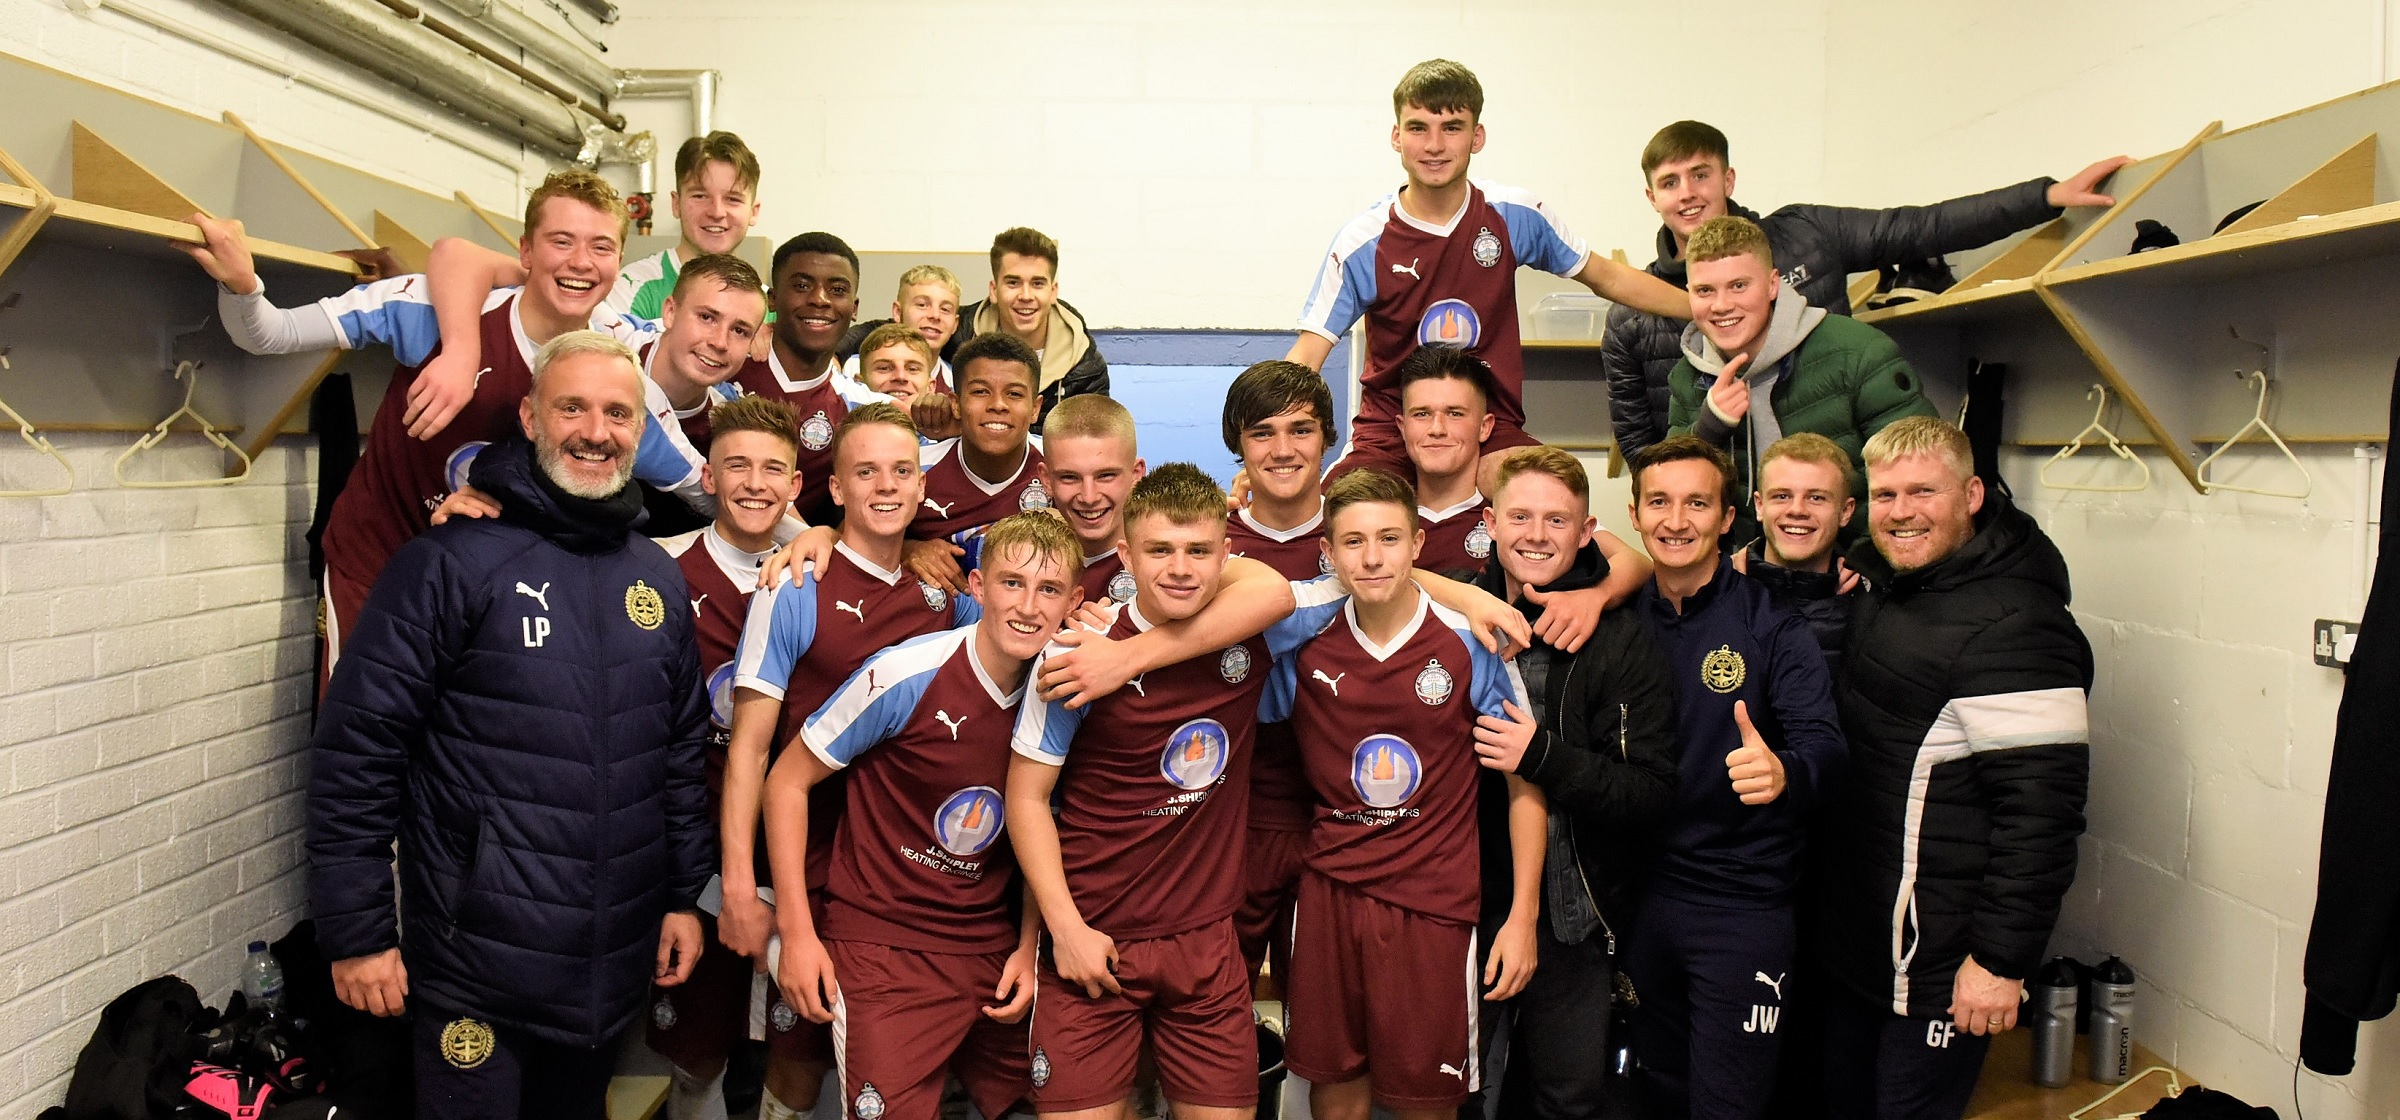 SSFC Academy pull off 'best win yet' to reach second national final